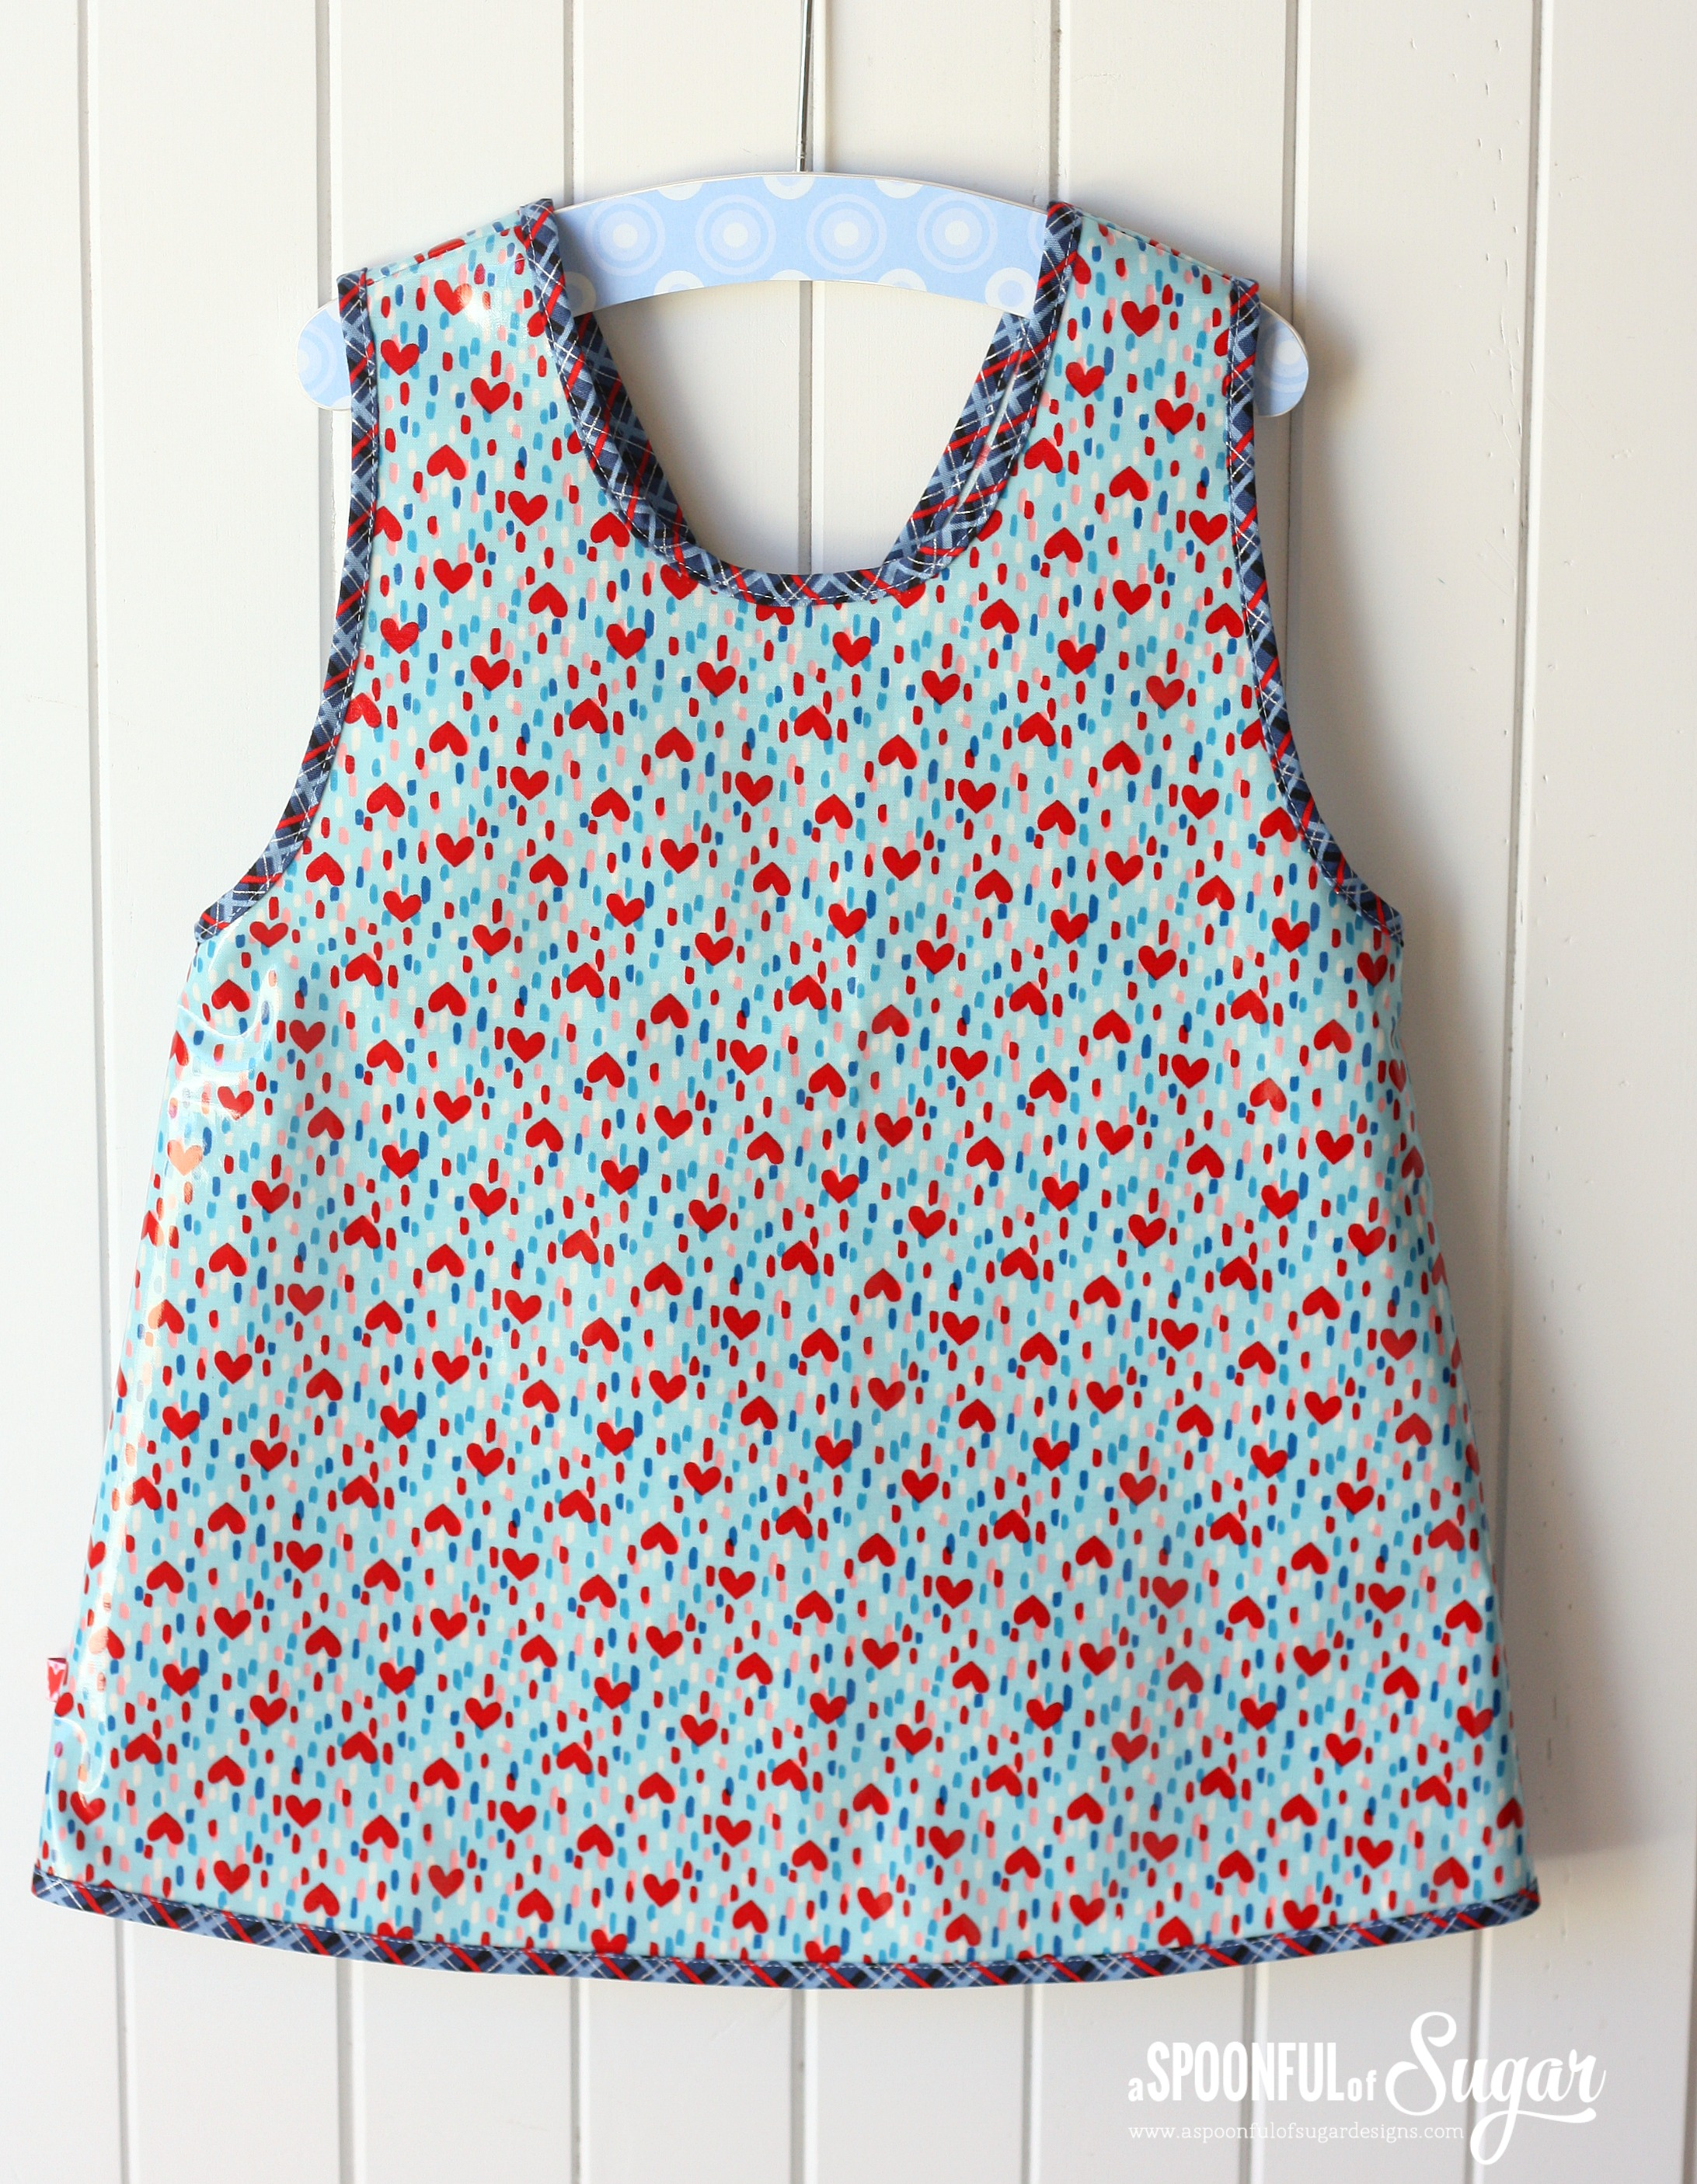 I Based These Mini Chef Aprons On Some I Made My Daughter When She Was A  Pre Schooler. She Used To Love To U201chelpu201d In The Kitchen And This Style Of  Apron Is ... Part 57